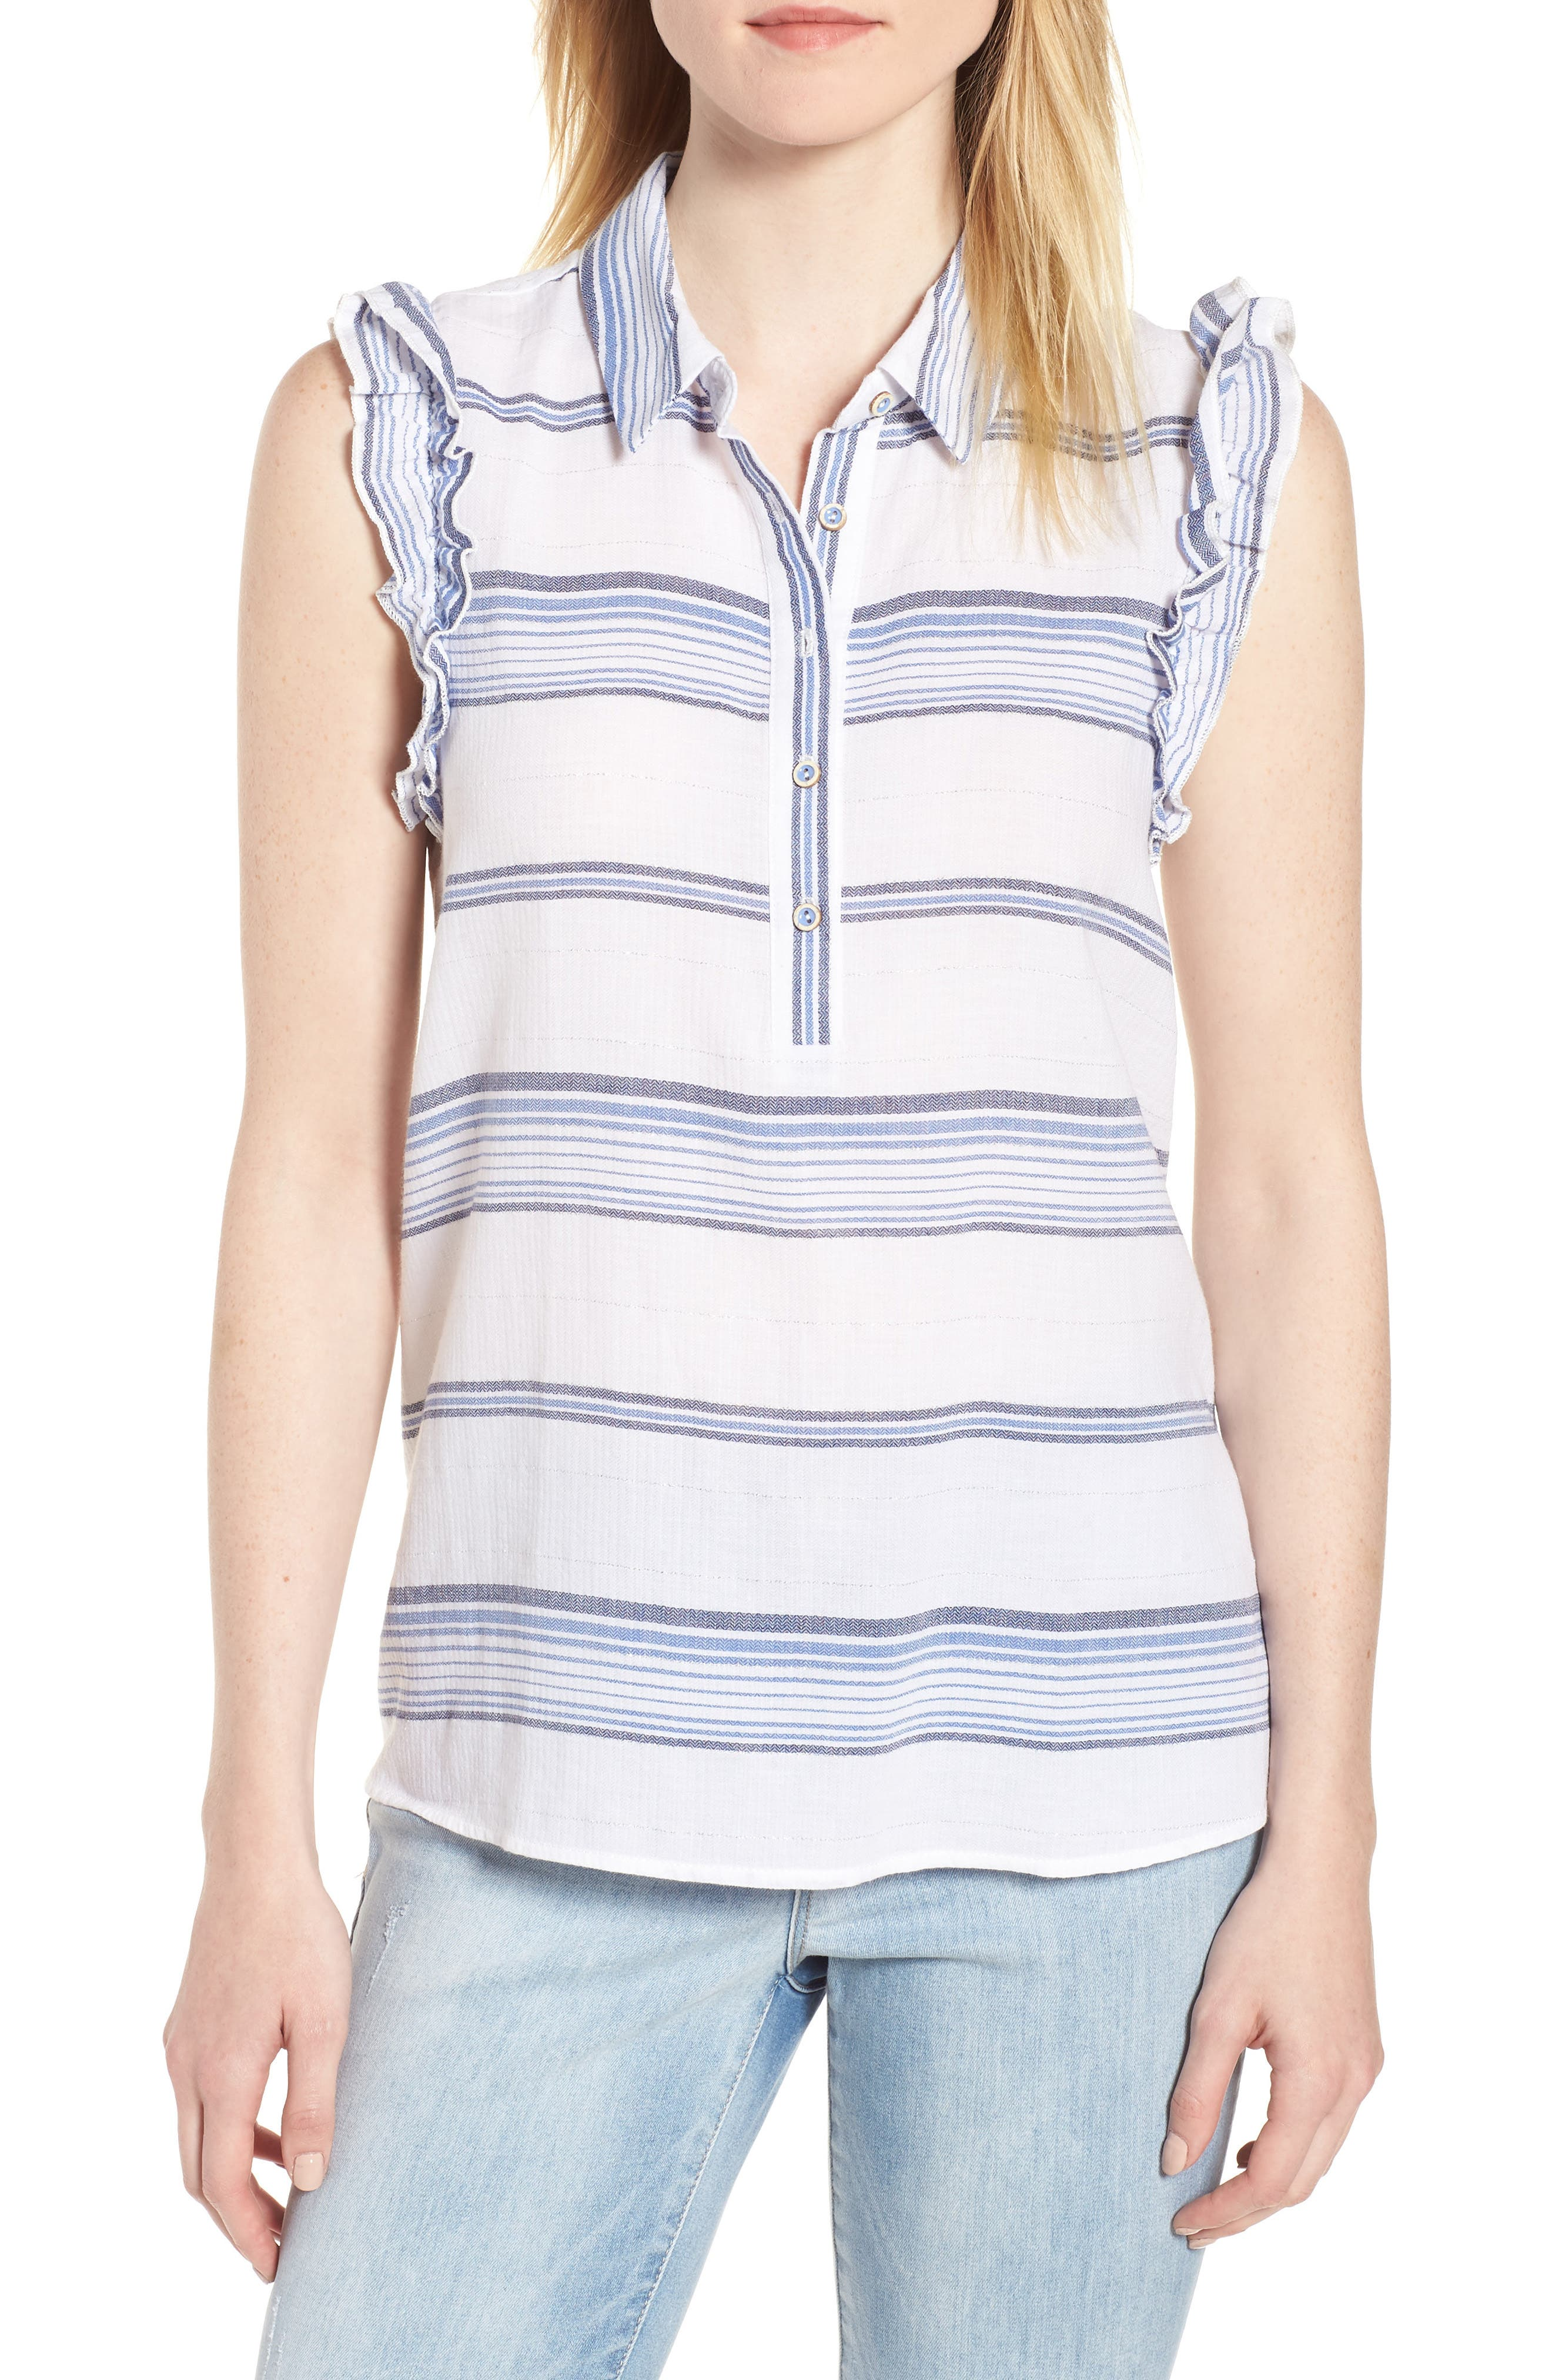 Ruffled Sleeve Striped Top,                         Main,                         color, Blue/ White